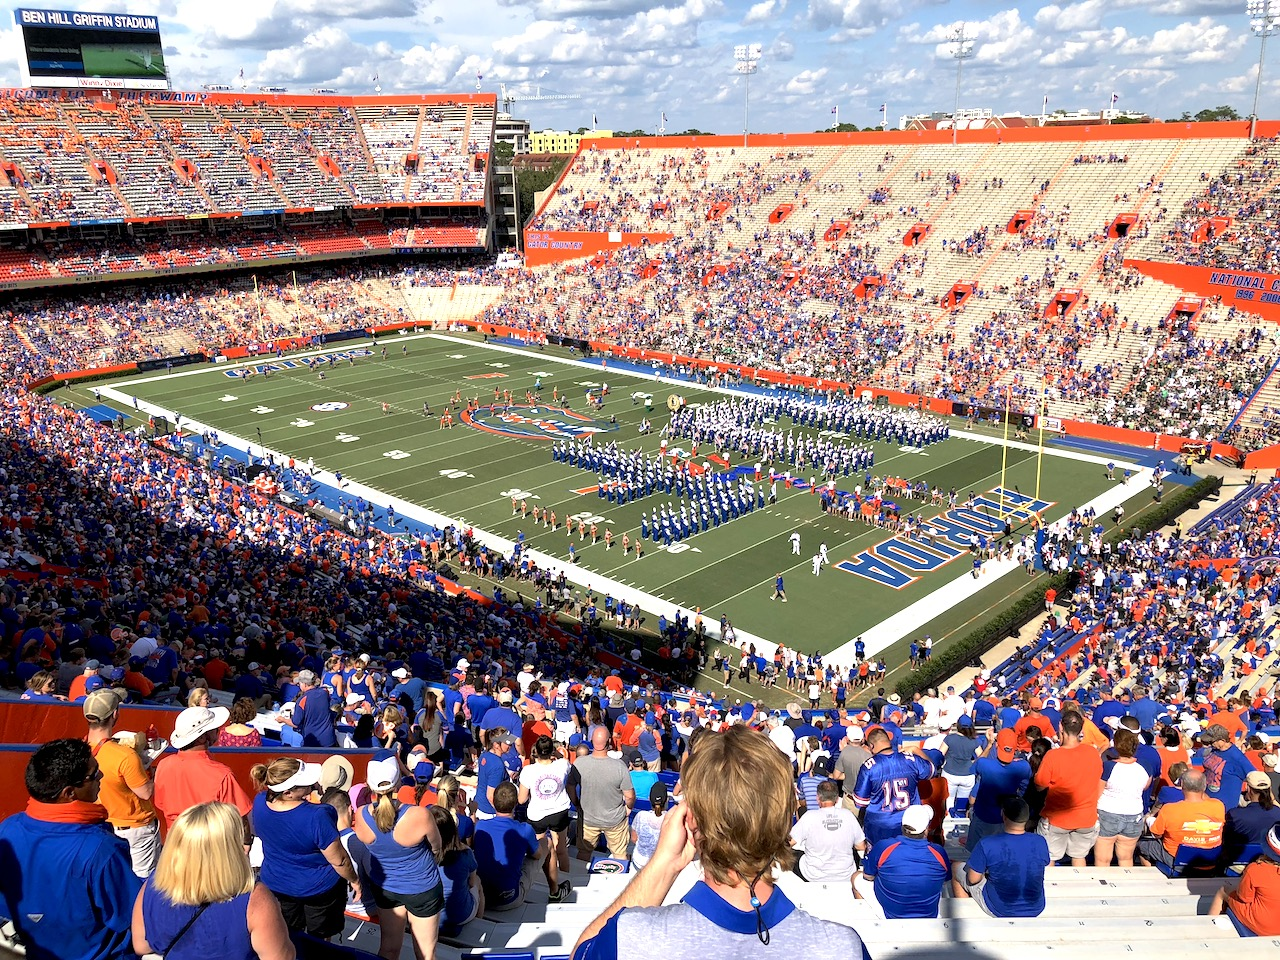 UF Sports - 2-day itinerary for families in Gainesville, FL #gainesville #florida #tourofflorida #alachuacounty #gainesvilleFL #universityofflorida #UF #gogators #Gainesvillewithkids #gainesvilleitinerary